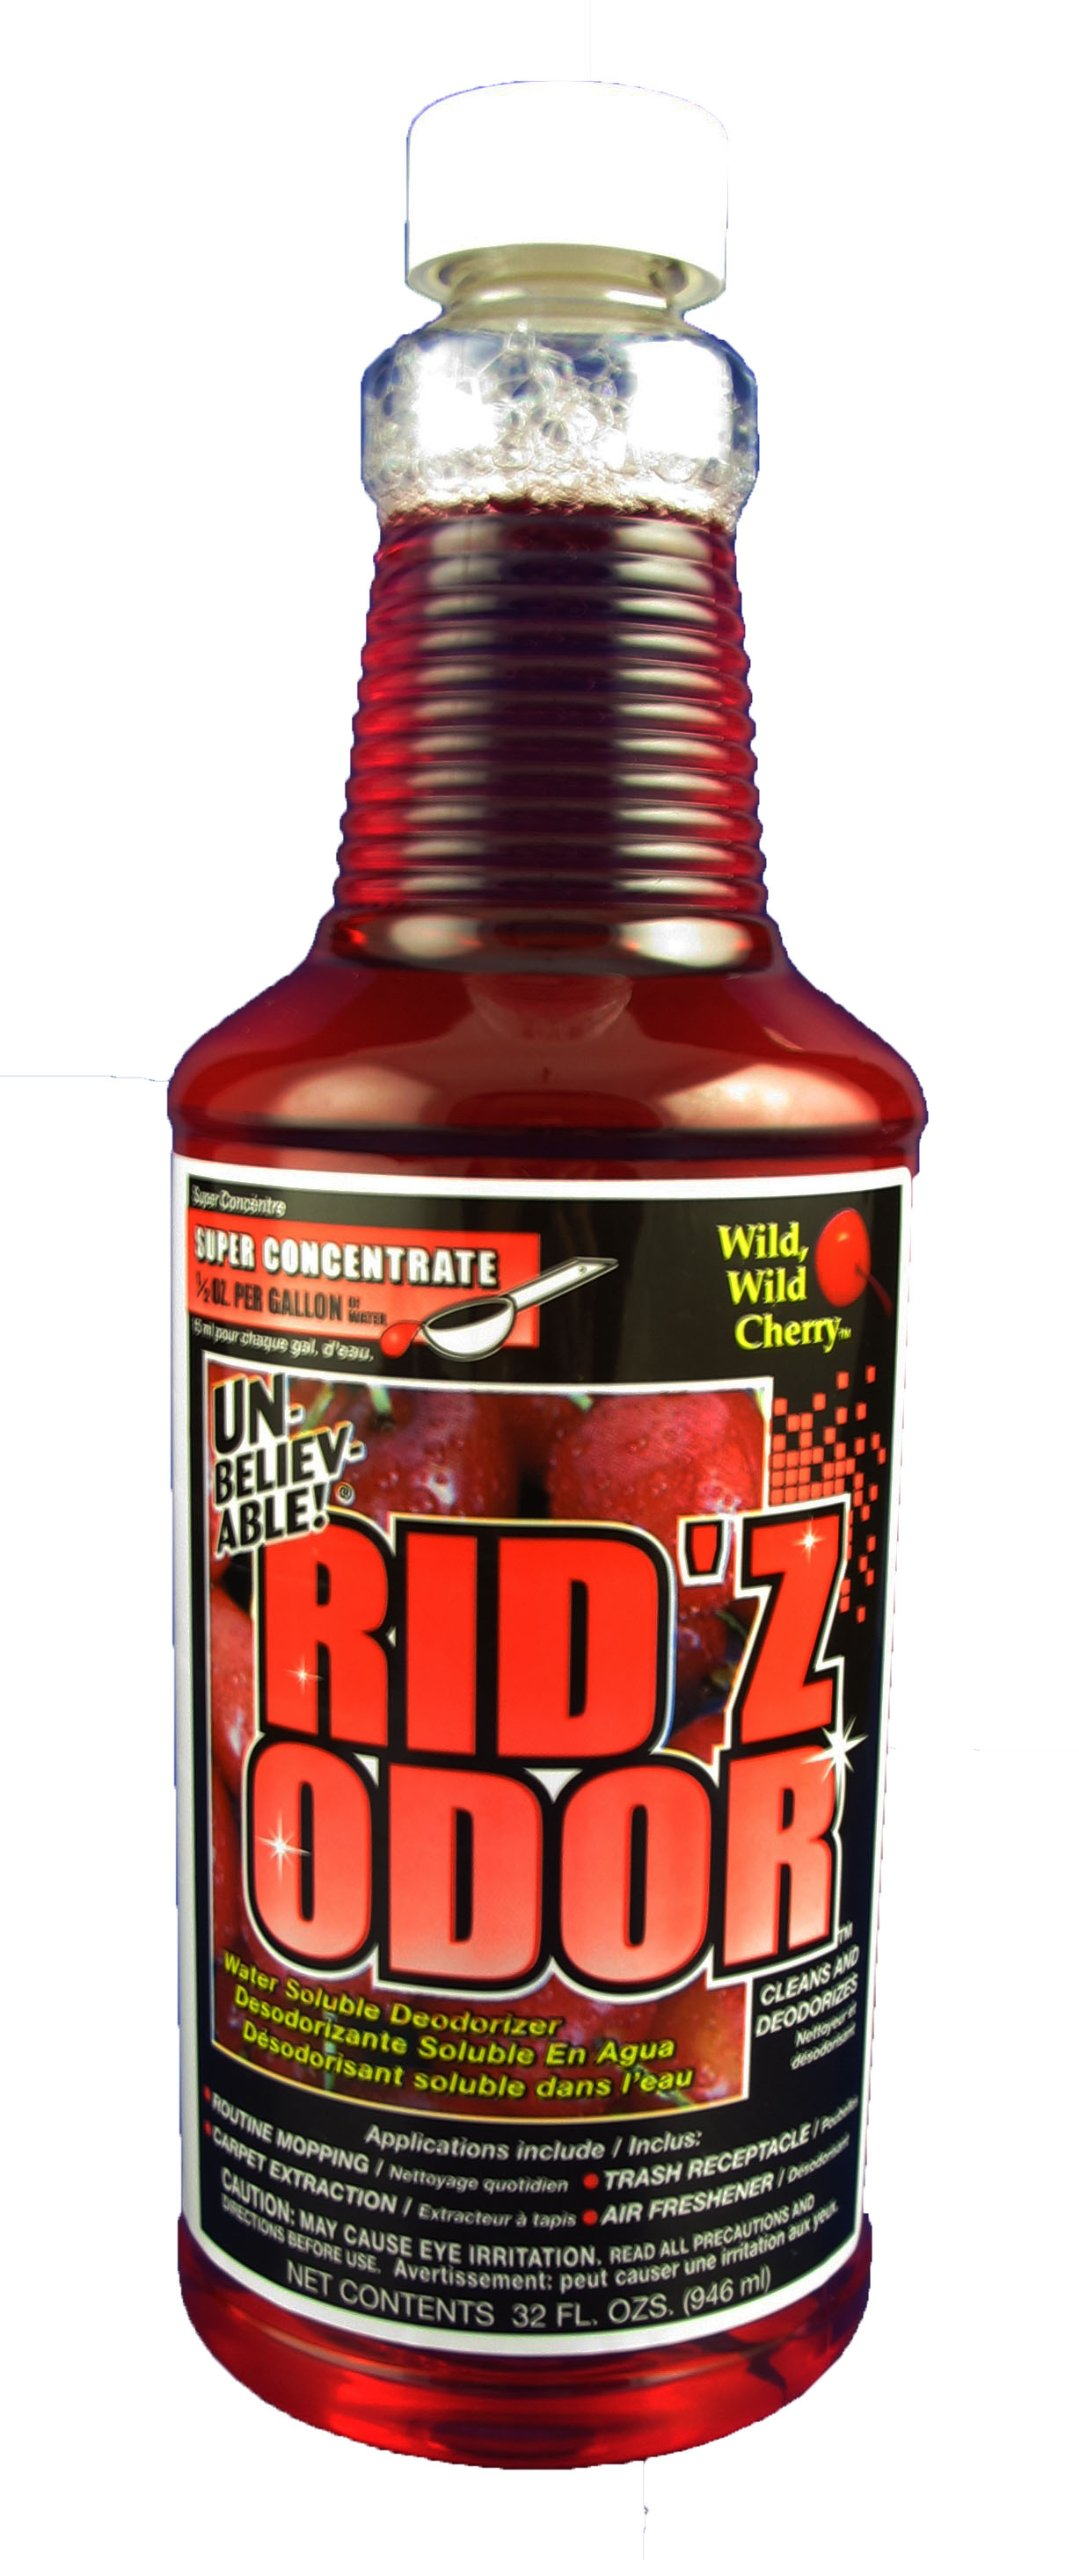 Unbelievable! UKO-503 32 Oz. Rid'z Odor Wild Wild Cherry Super Concentrated Deodorizer (Case of 12) by Core Products Company